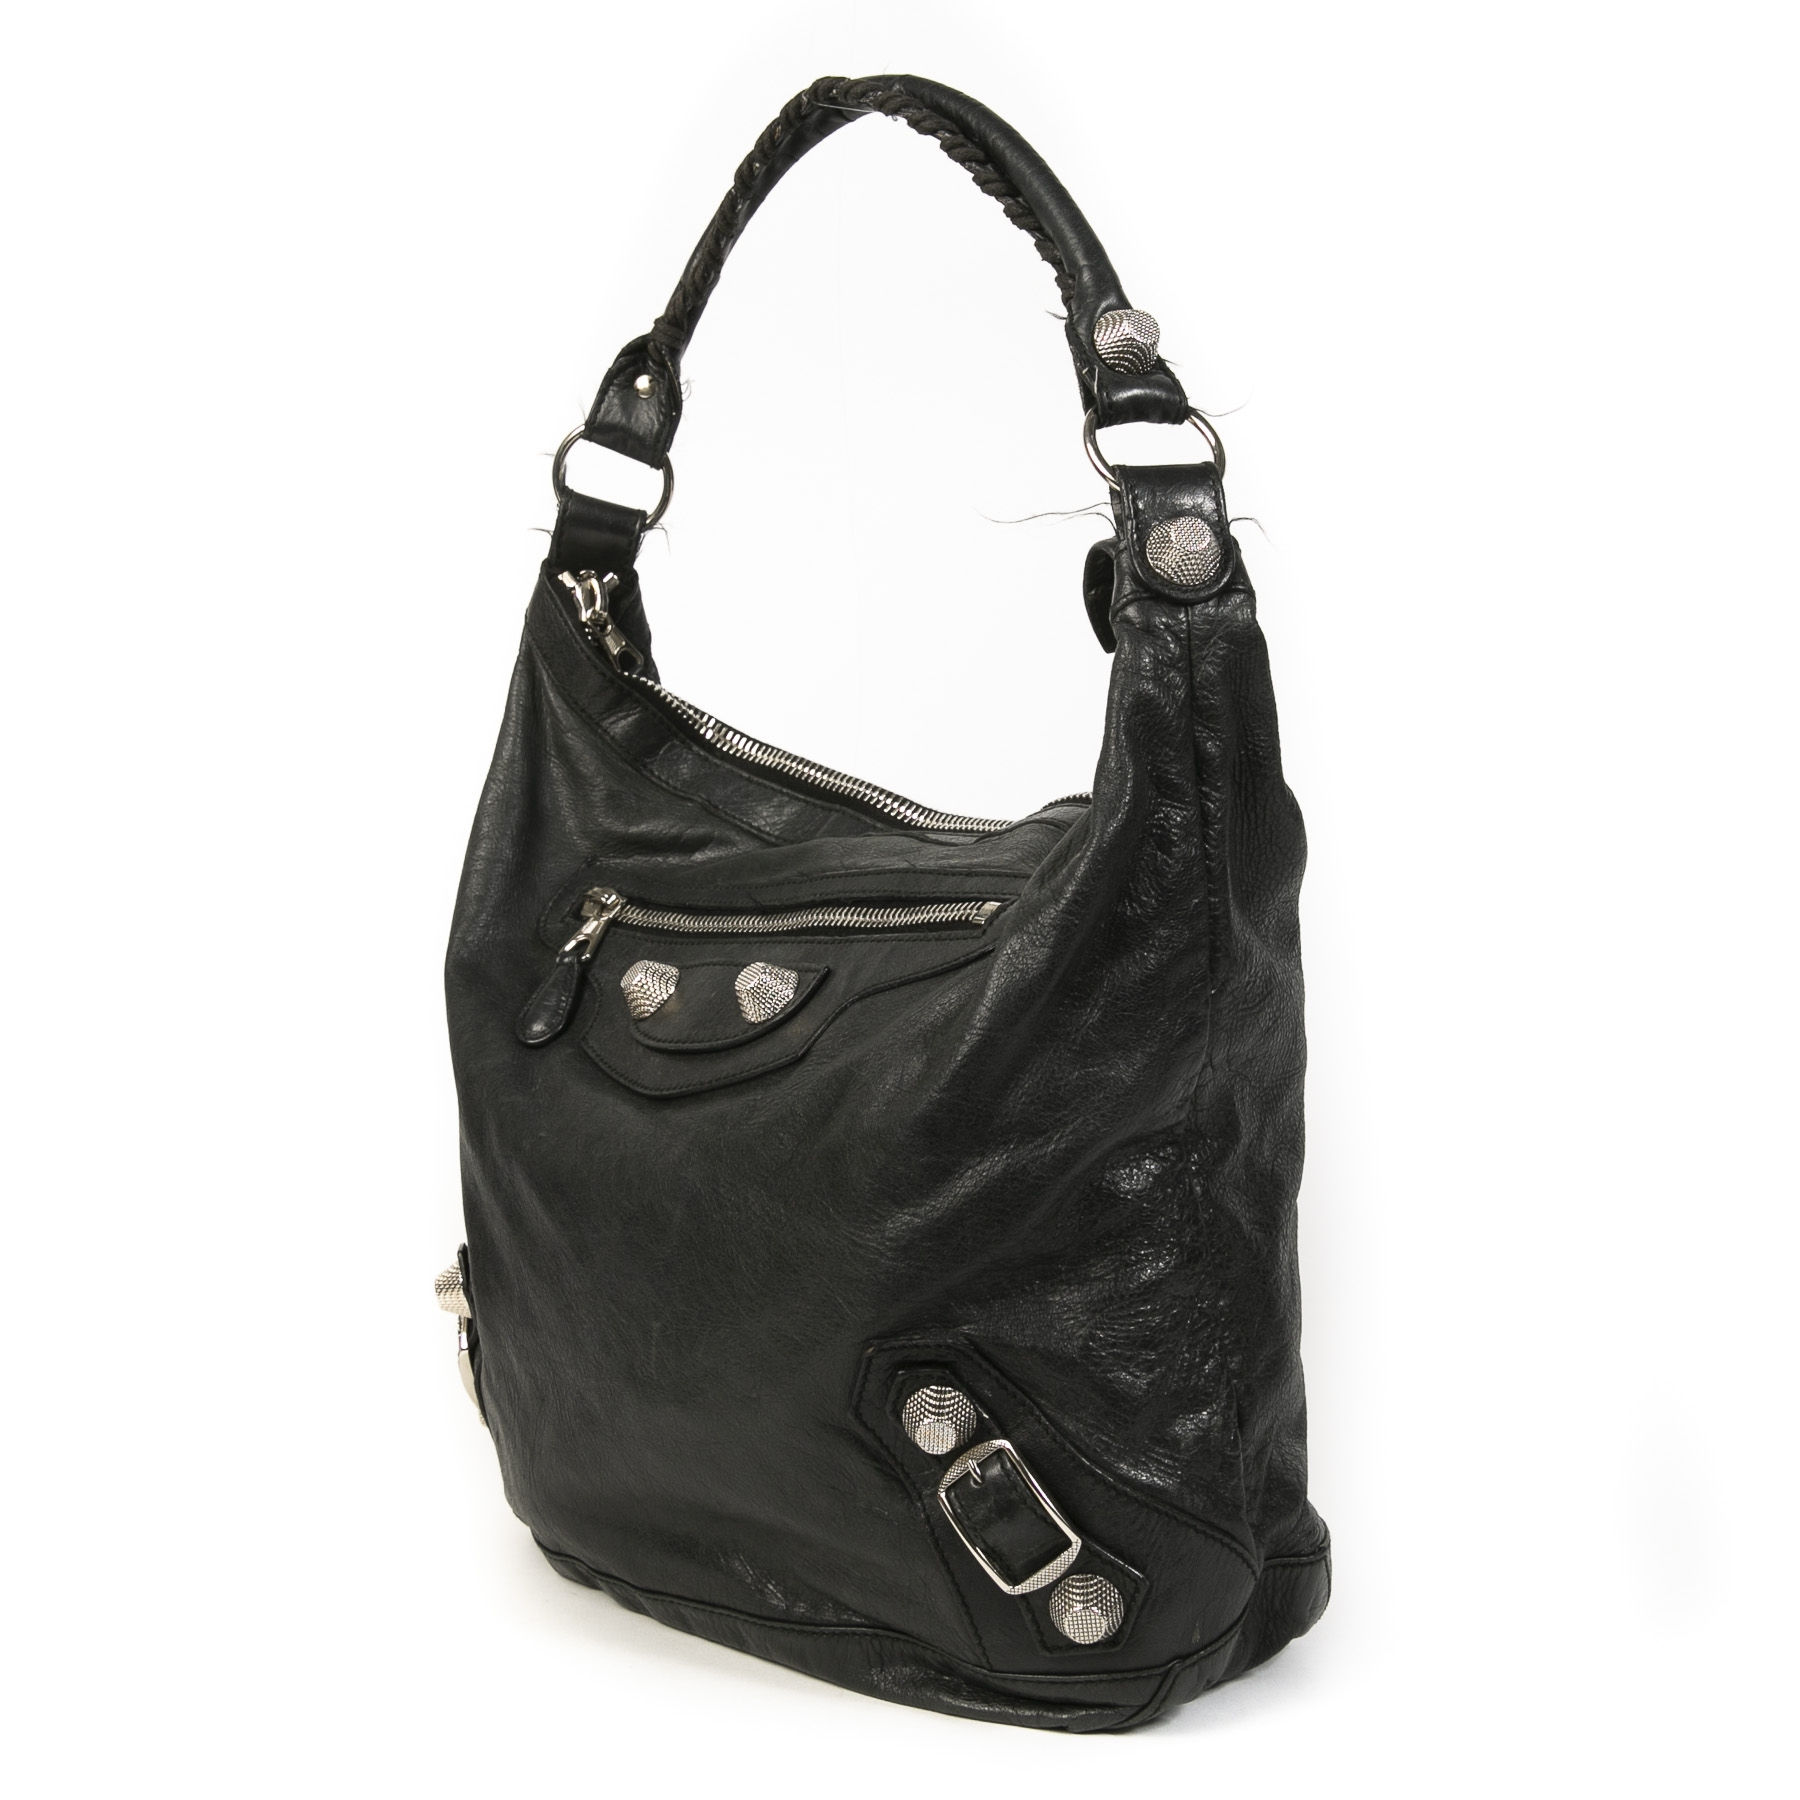 Authentieke tweedehands vintage Balenciaga Black Giant Day Bag koop online webshop LabelLOV